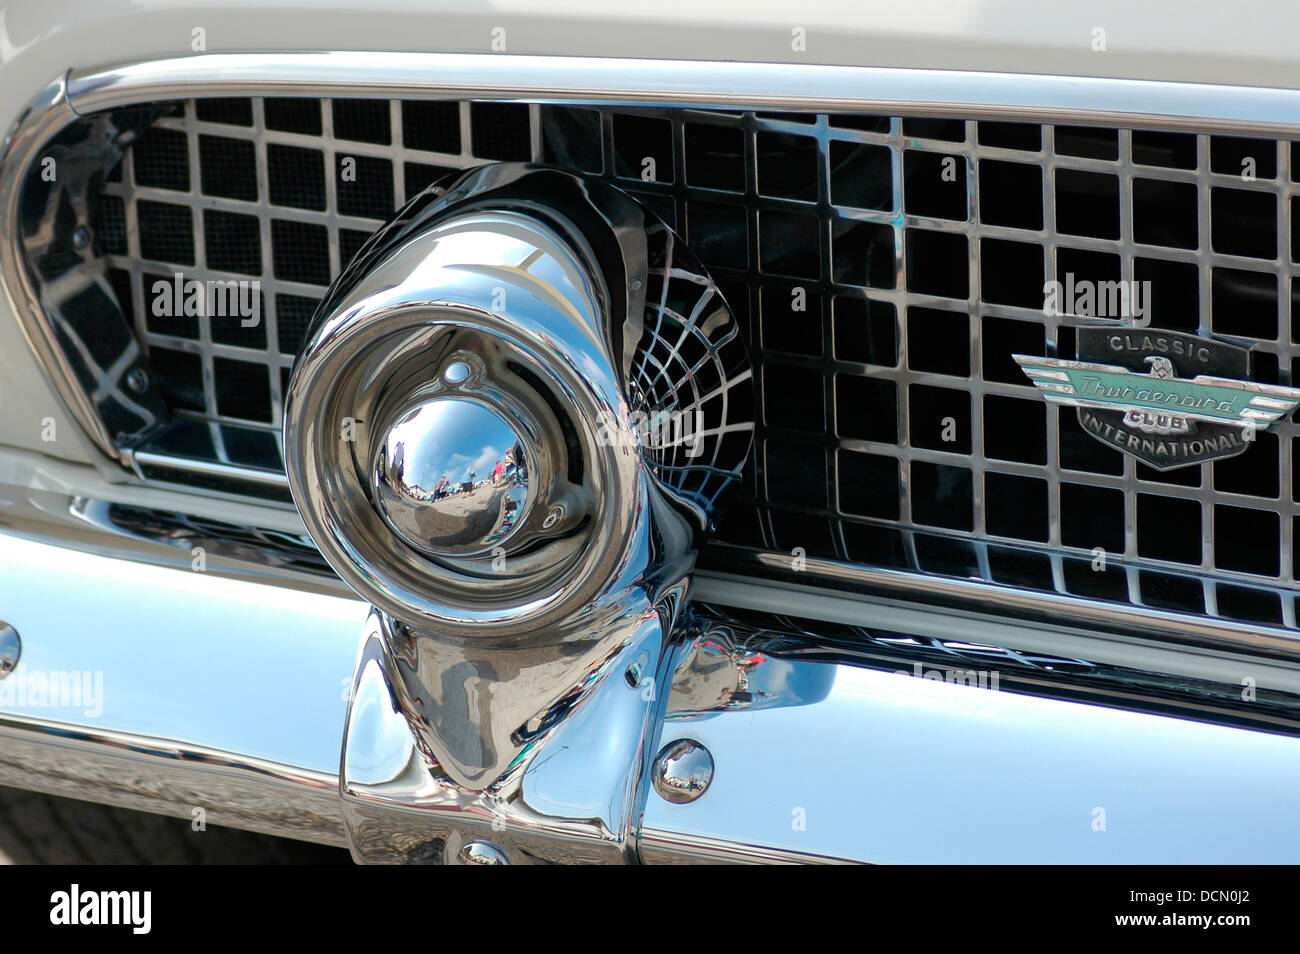 Custom car show central Florida. Ford Thunderbird bumper and grille detail.